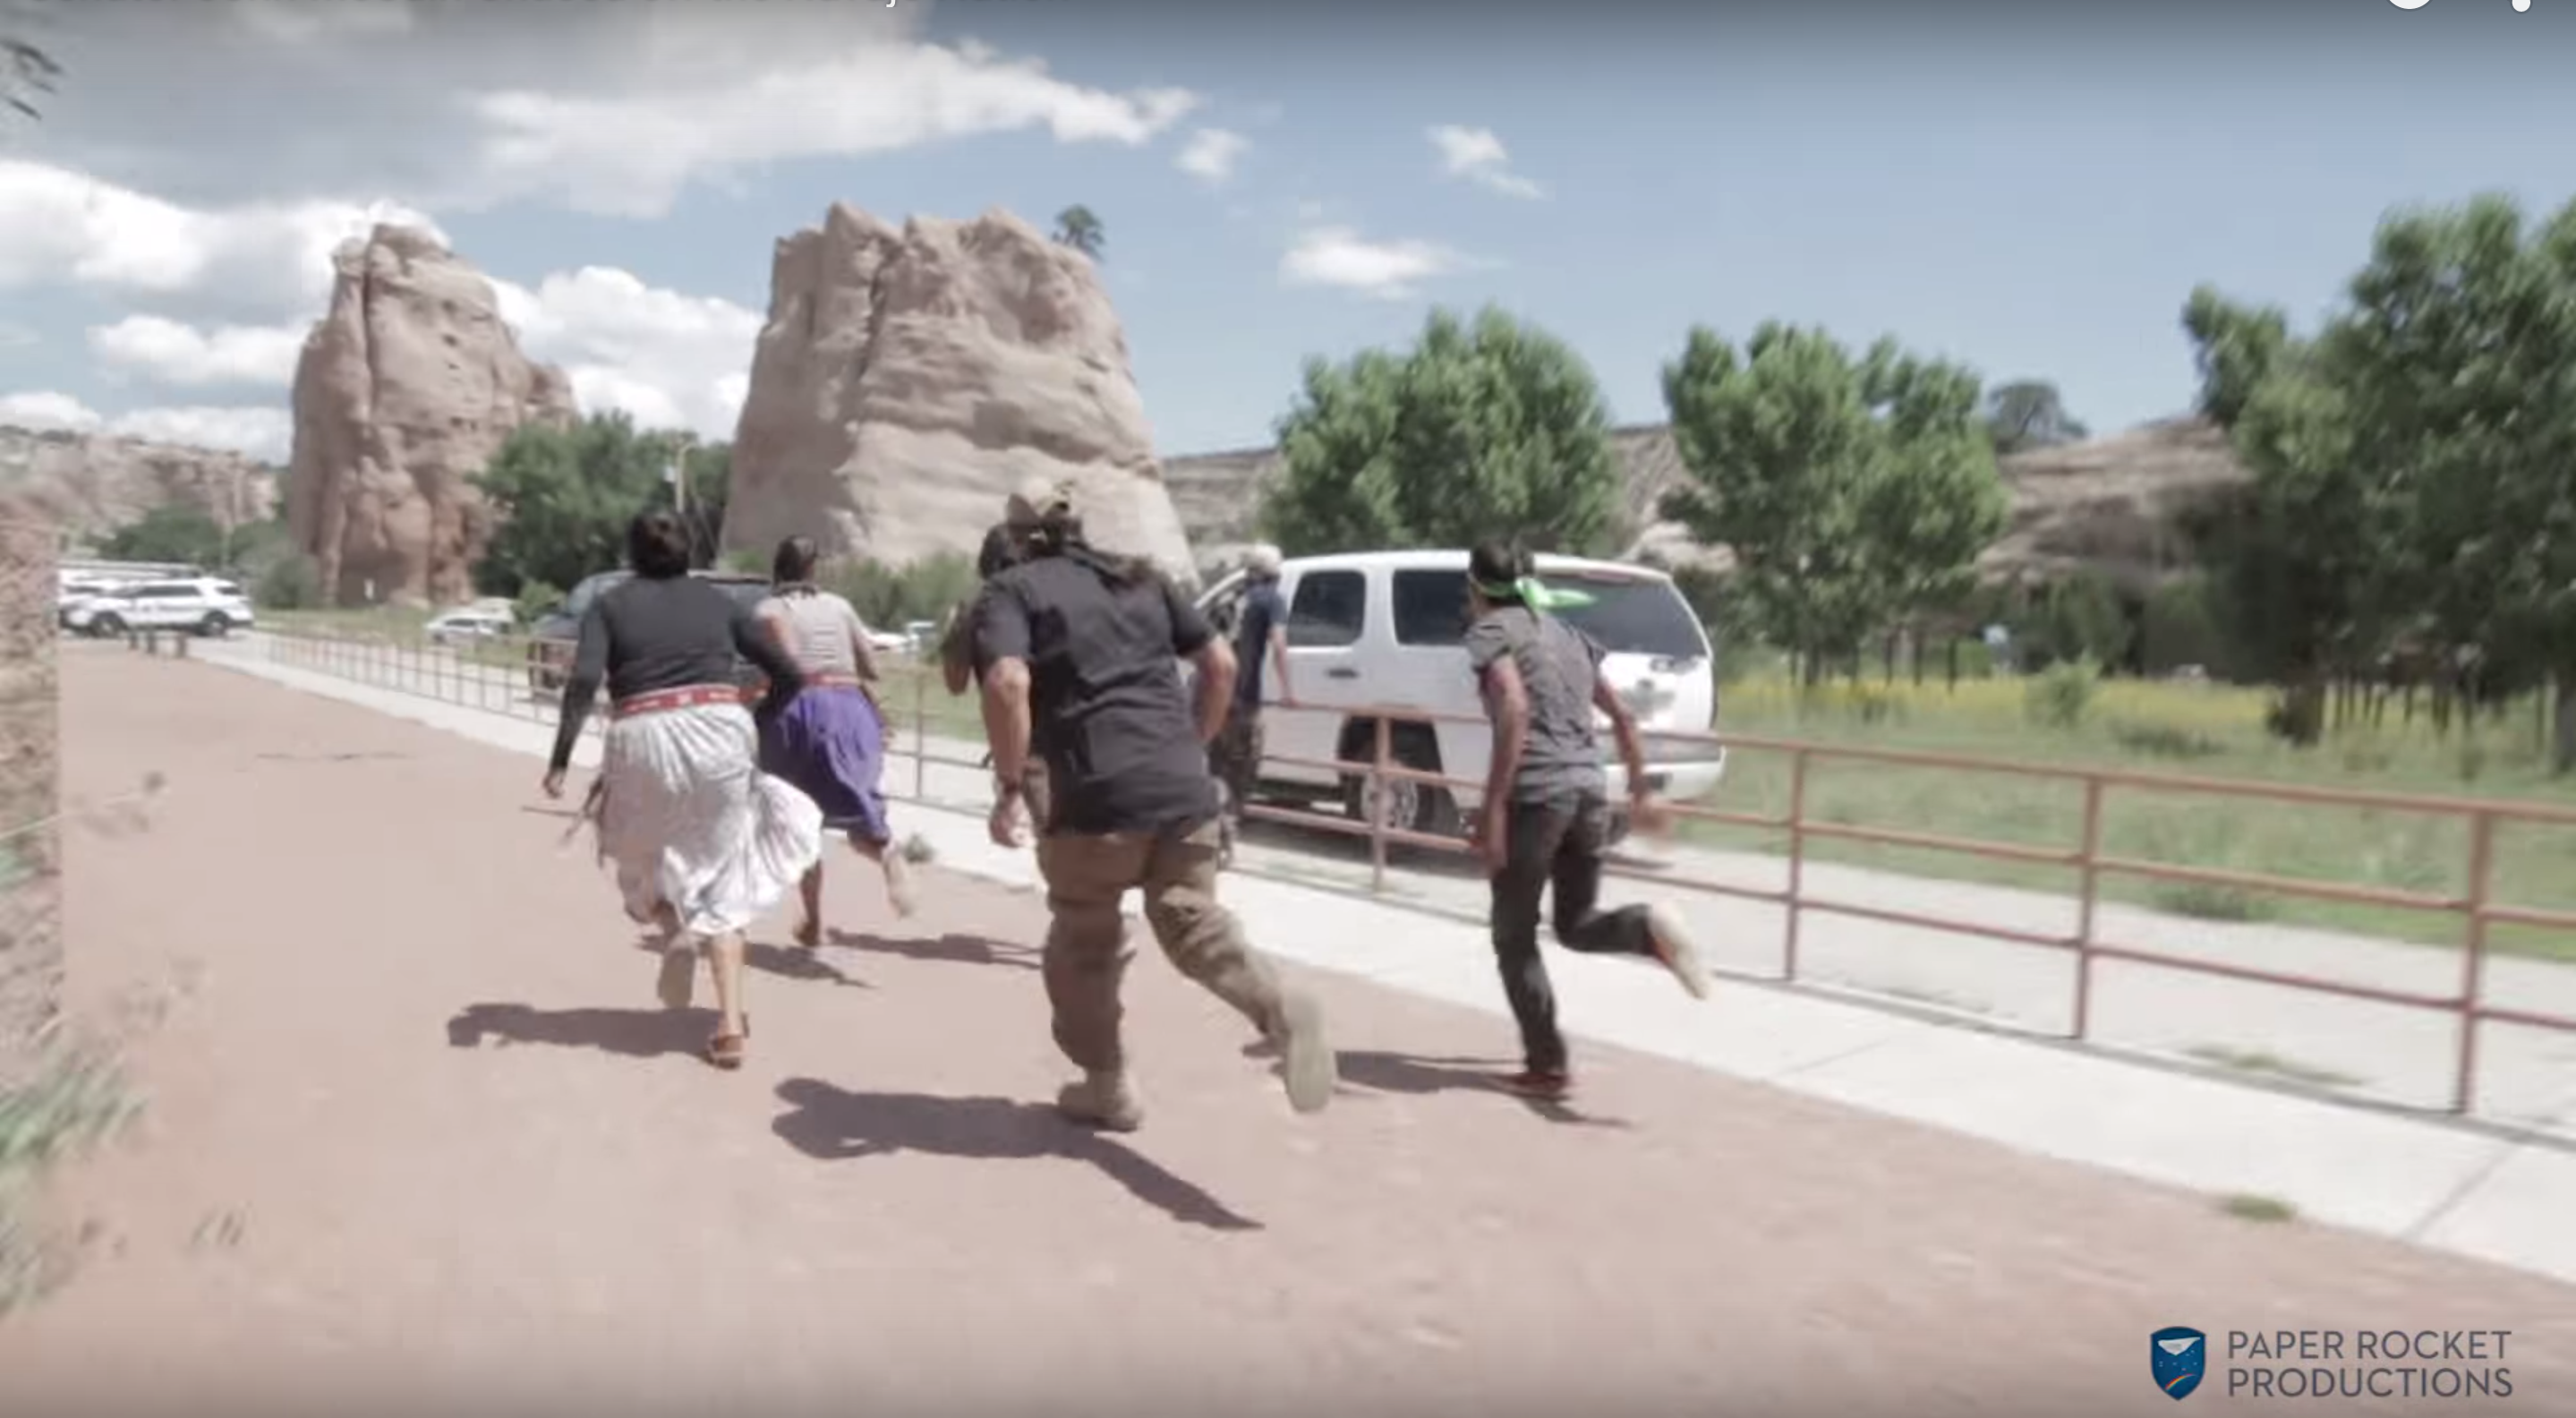 'Get The Hell Off Our Land!' — Apache, Navajo Protestors Chase McCain Motorcade Off Reservation